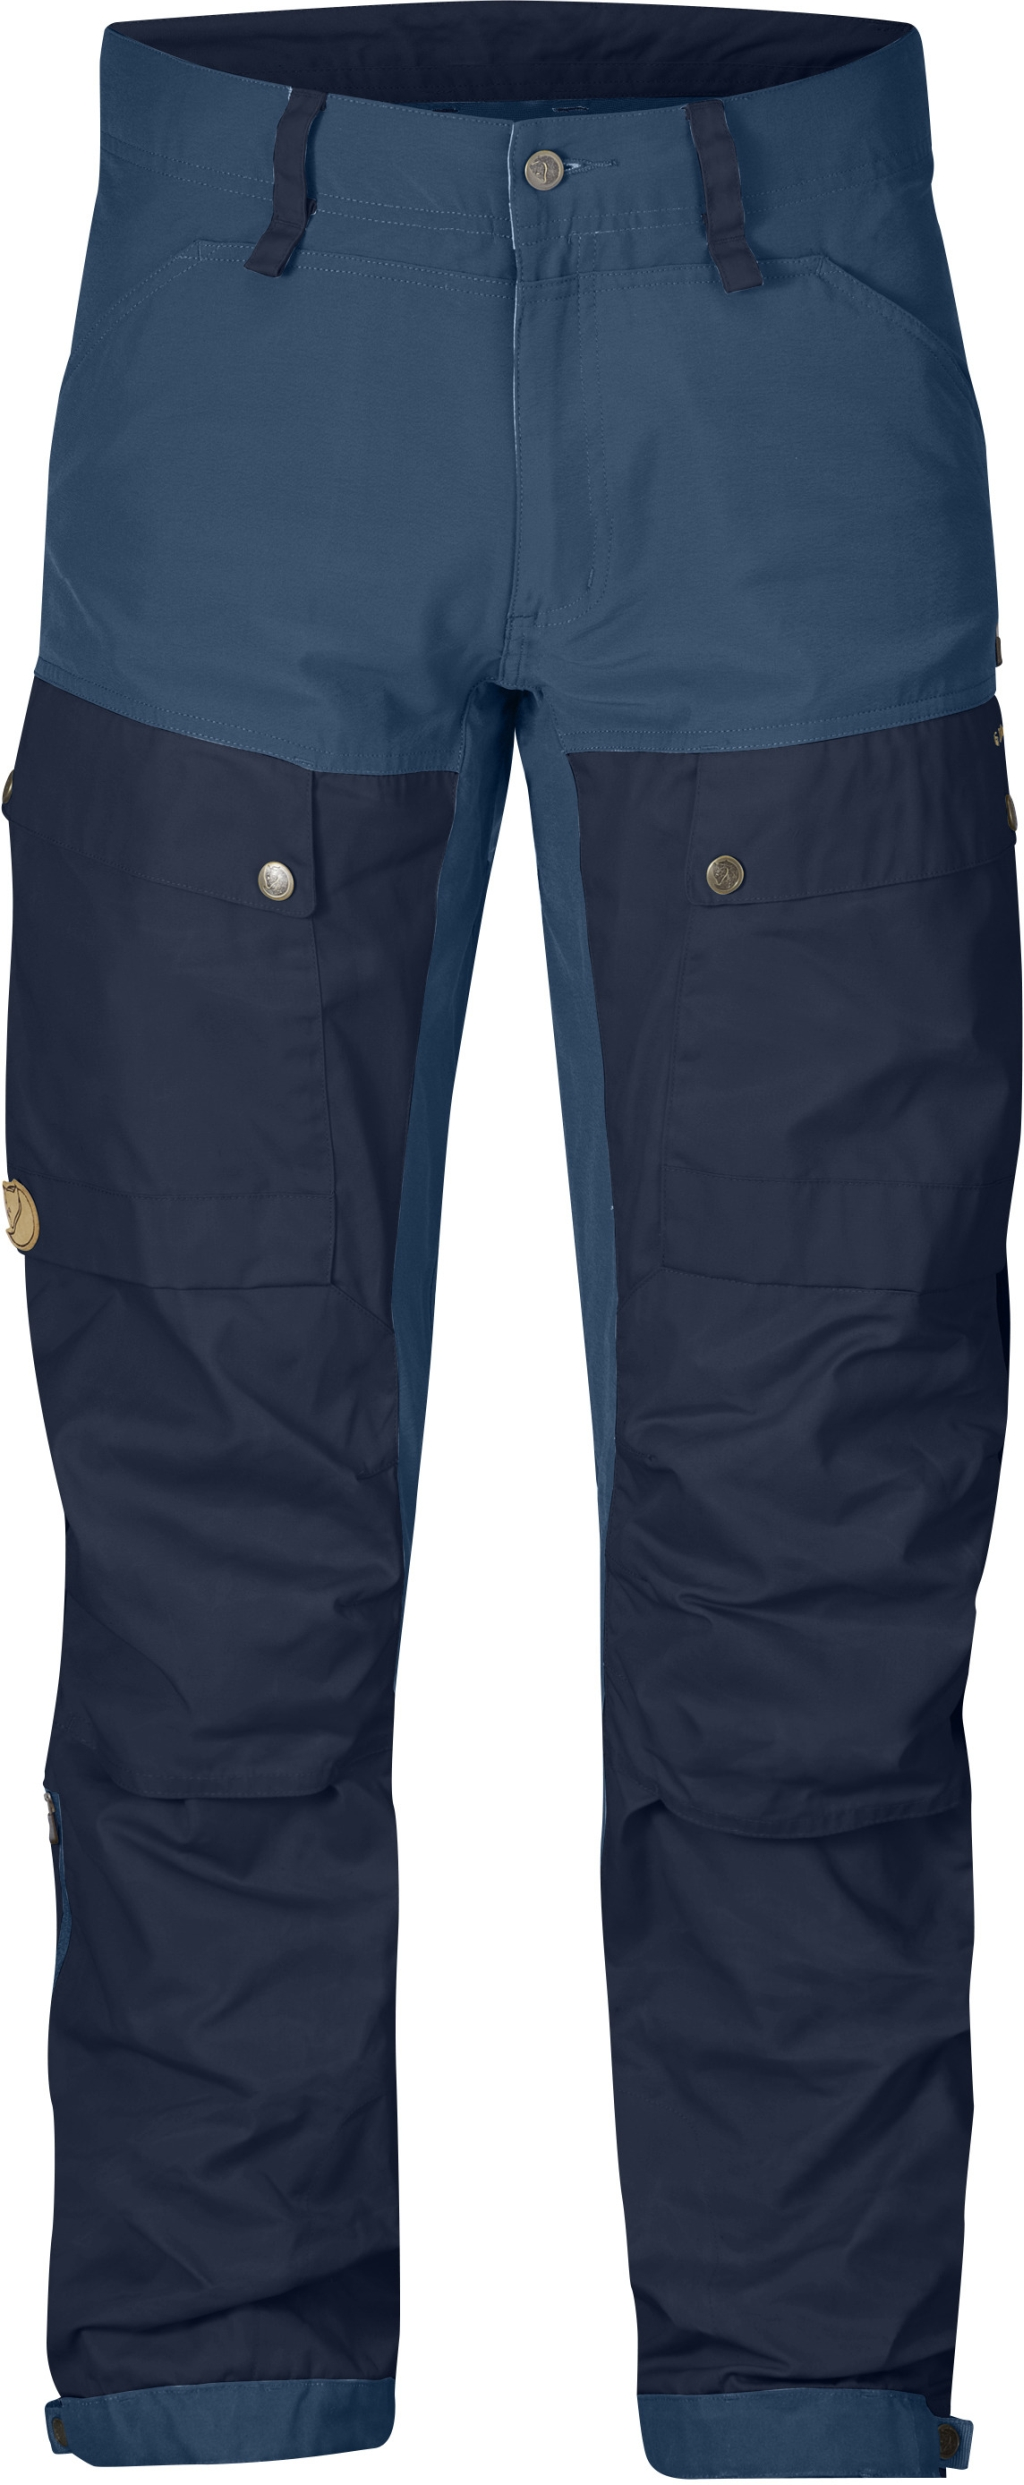 FjallRaven Keb Trousers Regular Dark Navy-30